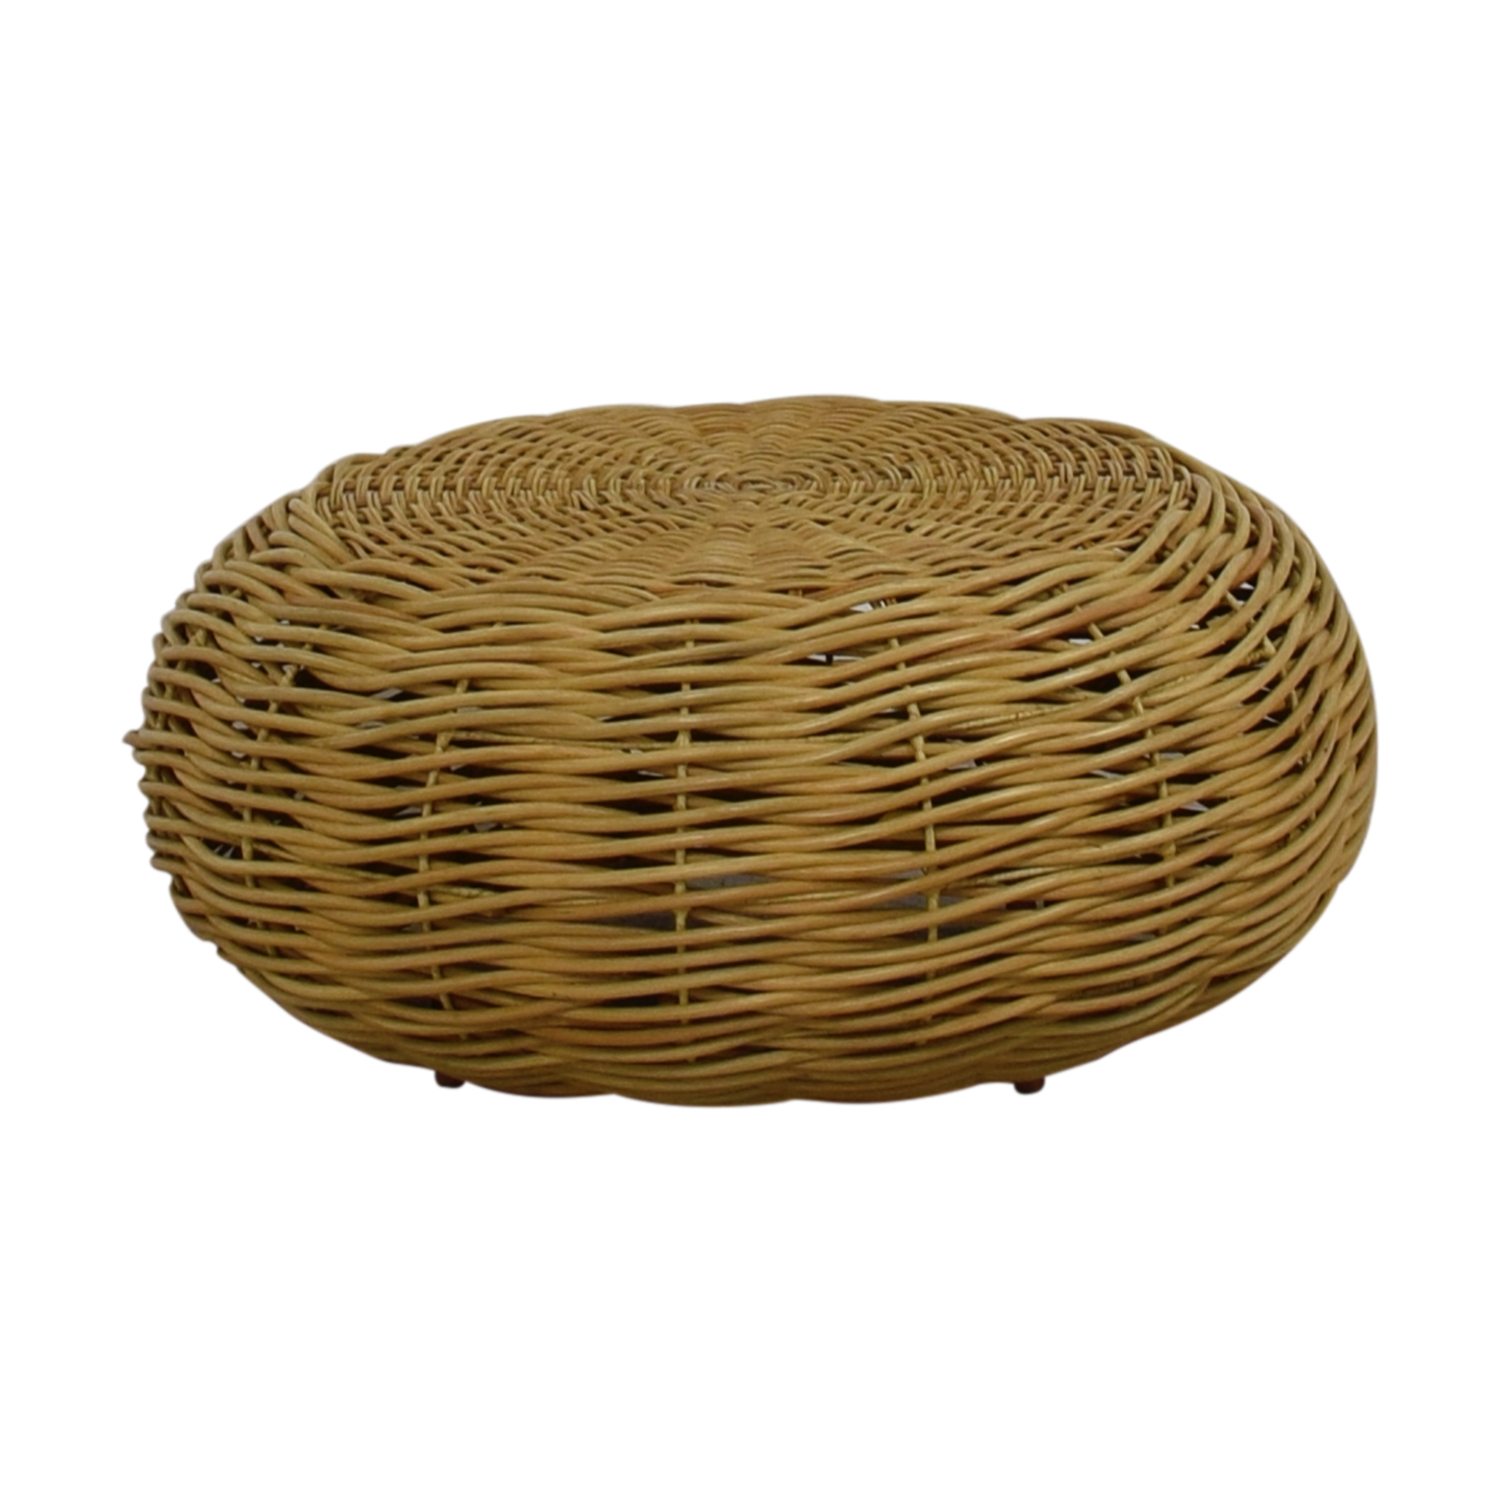 Wicker Coffee Table price